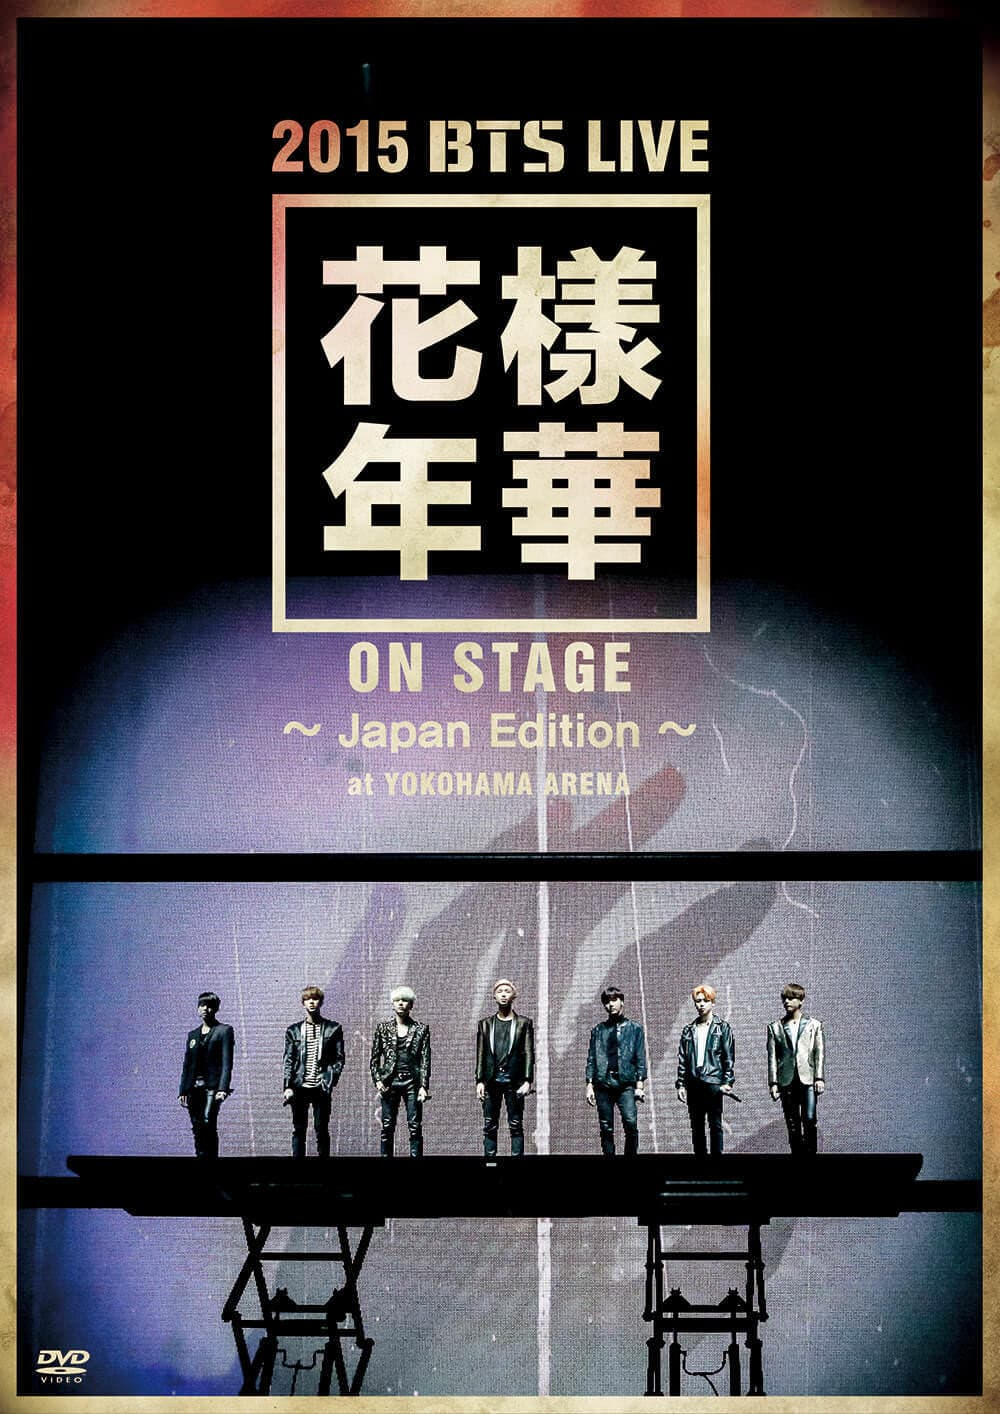 2015 BTS LIVE <花様年華 on stage> ~Japan Edition~ at YOKOHAMA ARENA